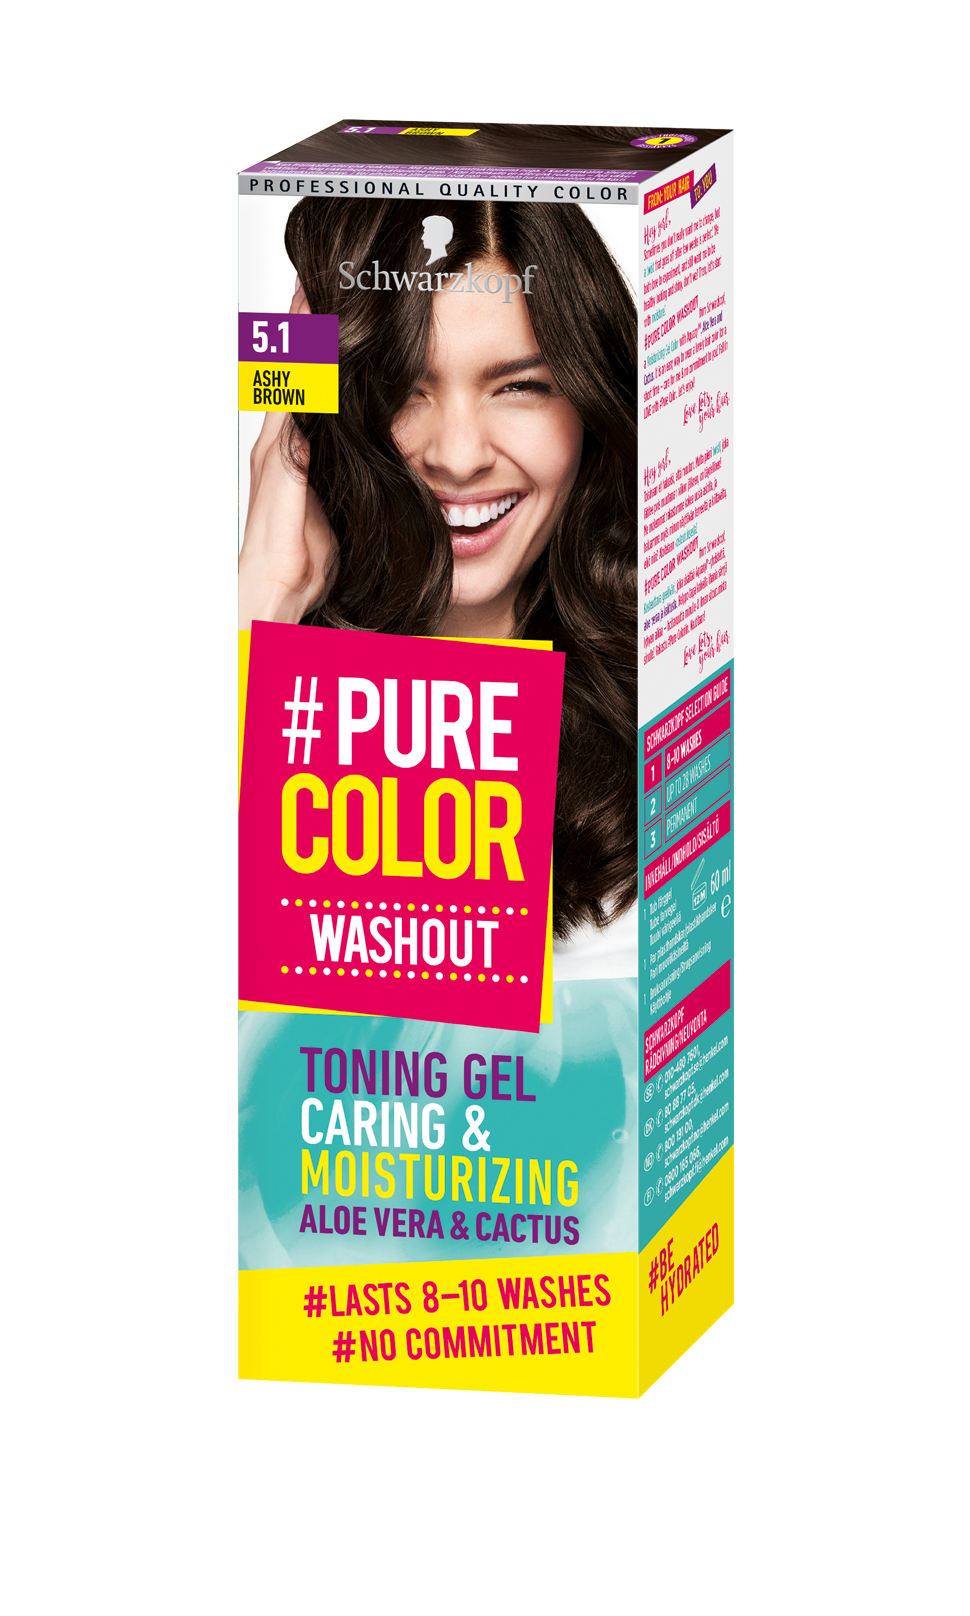 Pure-color-washout-5-1-ashy-brown